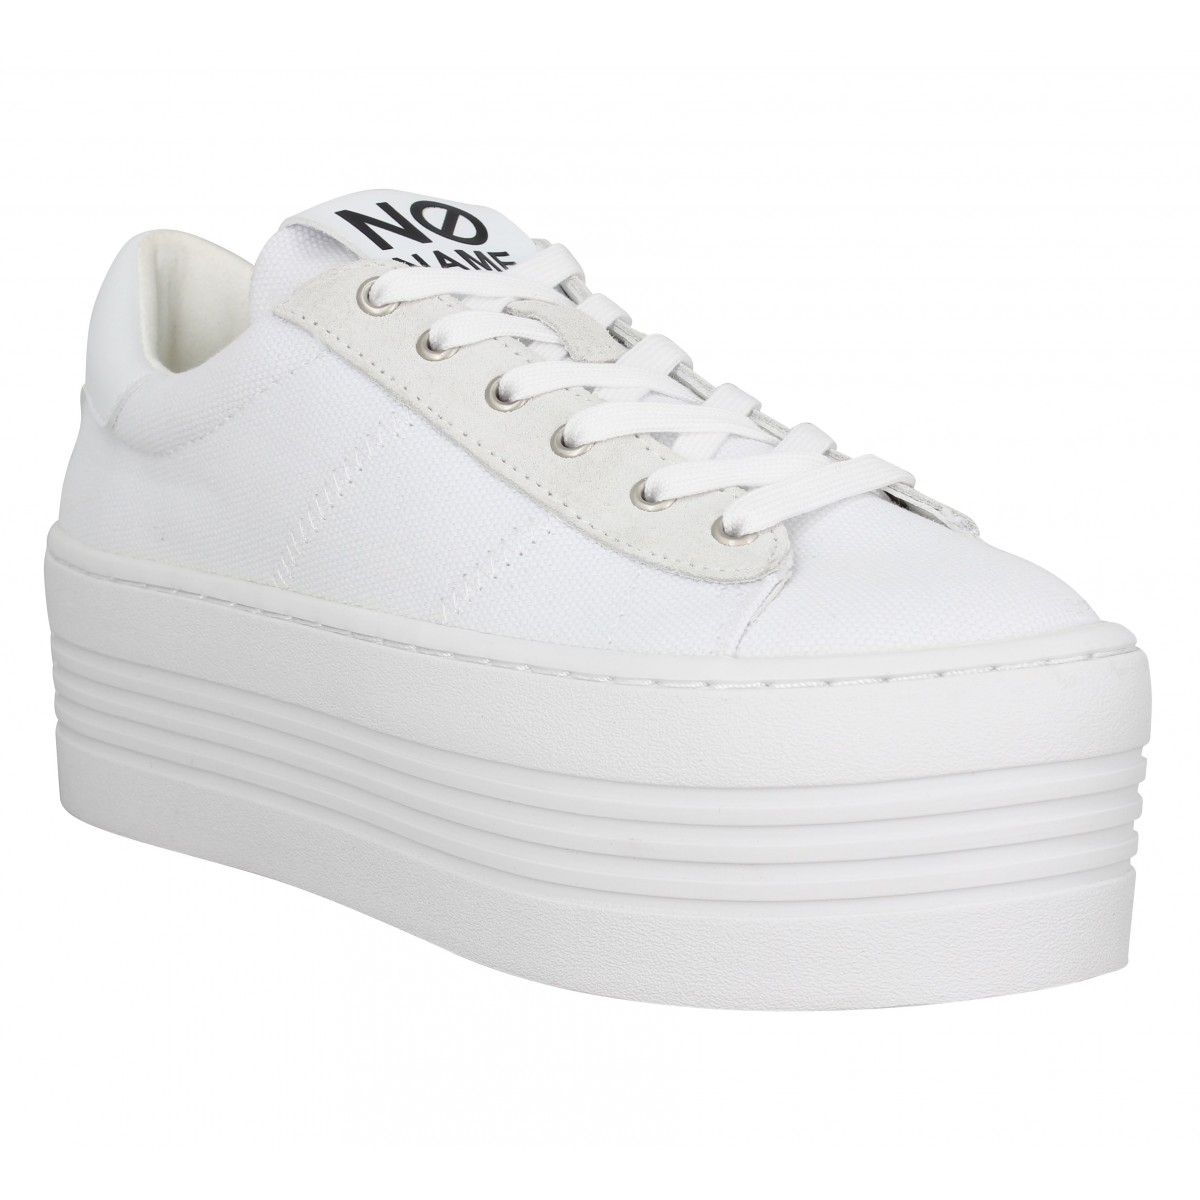 Baskets NO NAME Twin Sneaker toile Femme Blanc